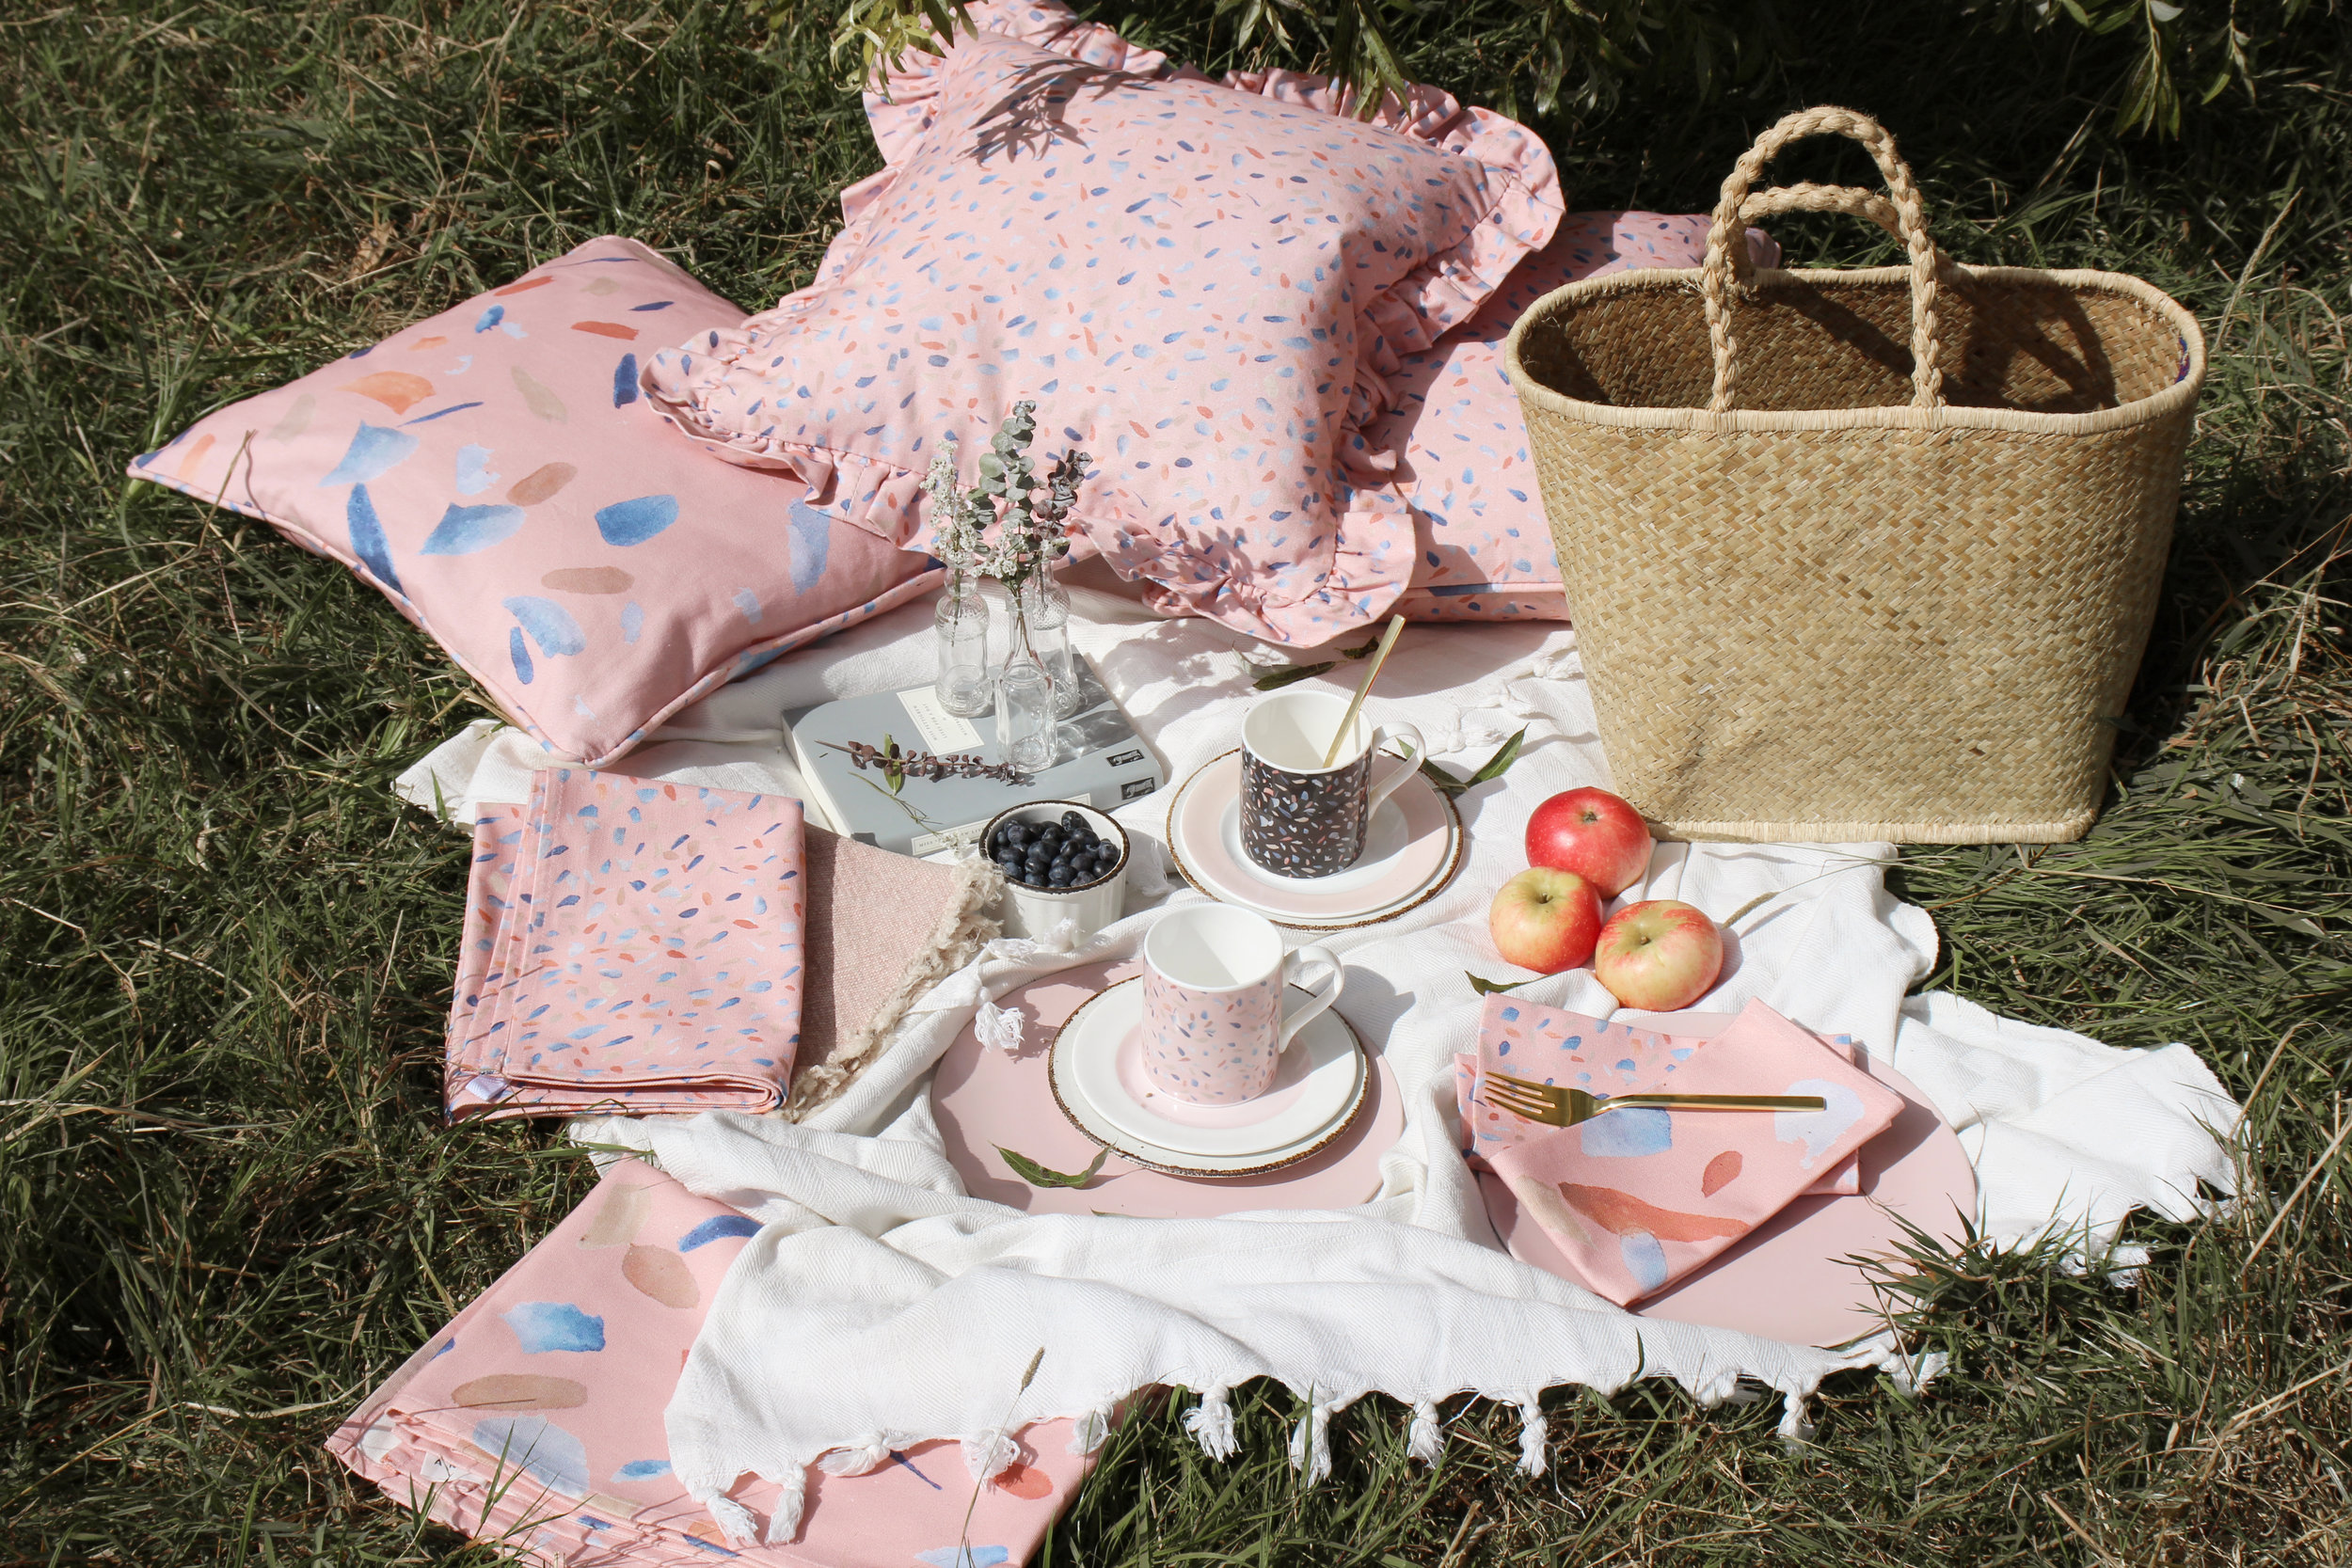 House Anna Picnic Setting 2019 Spring/Summer